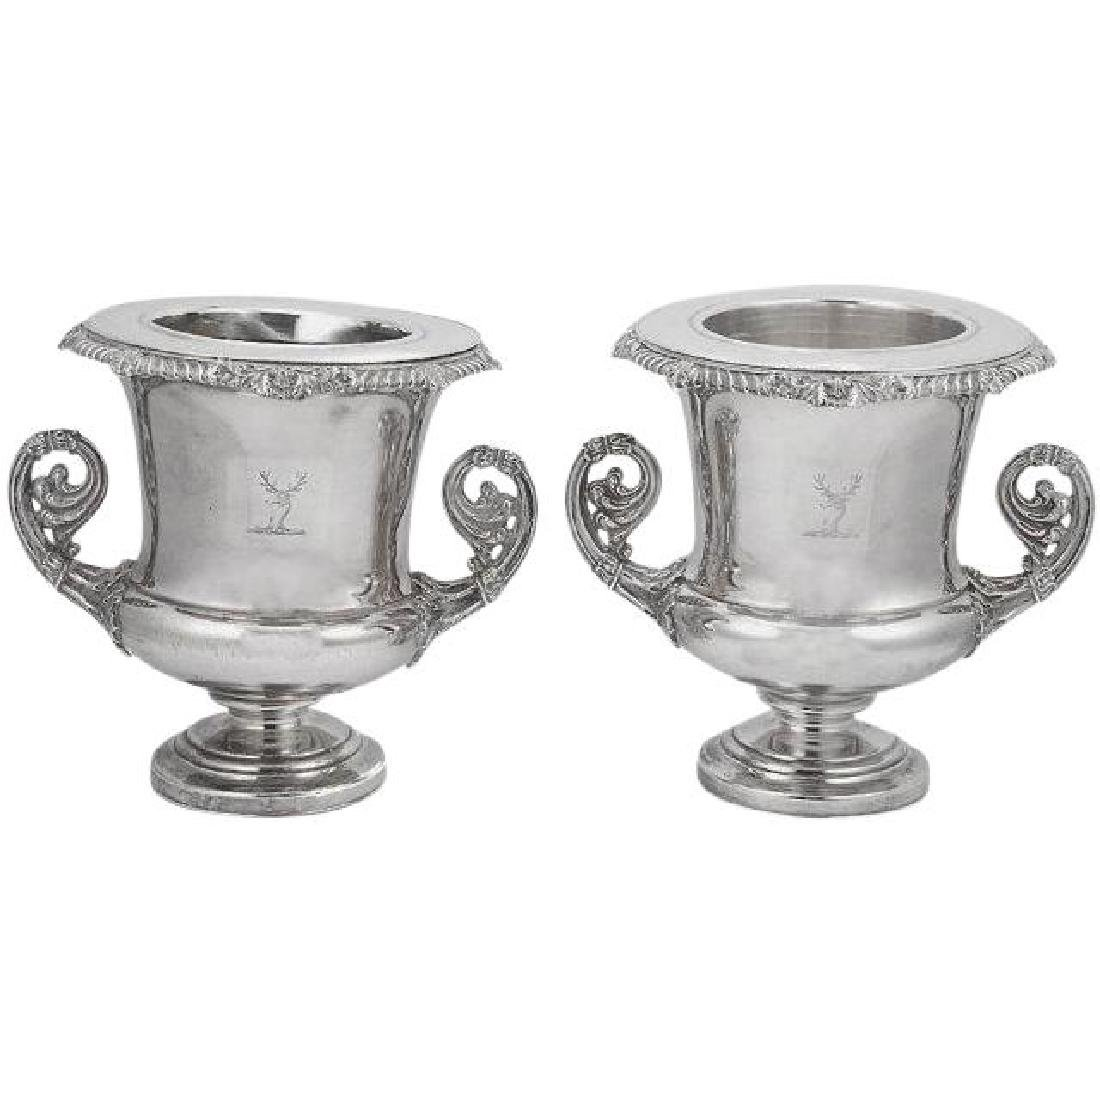 Antique Old Sheffield Silver Plated Ice Buckets.